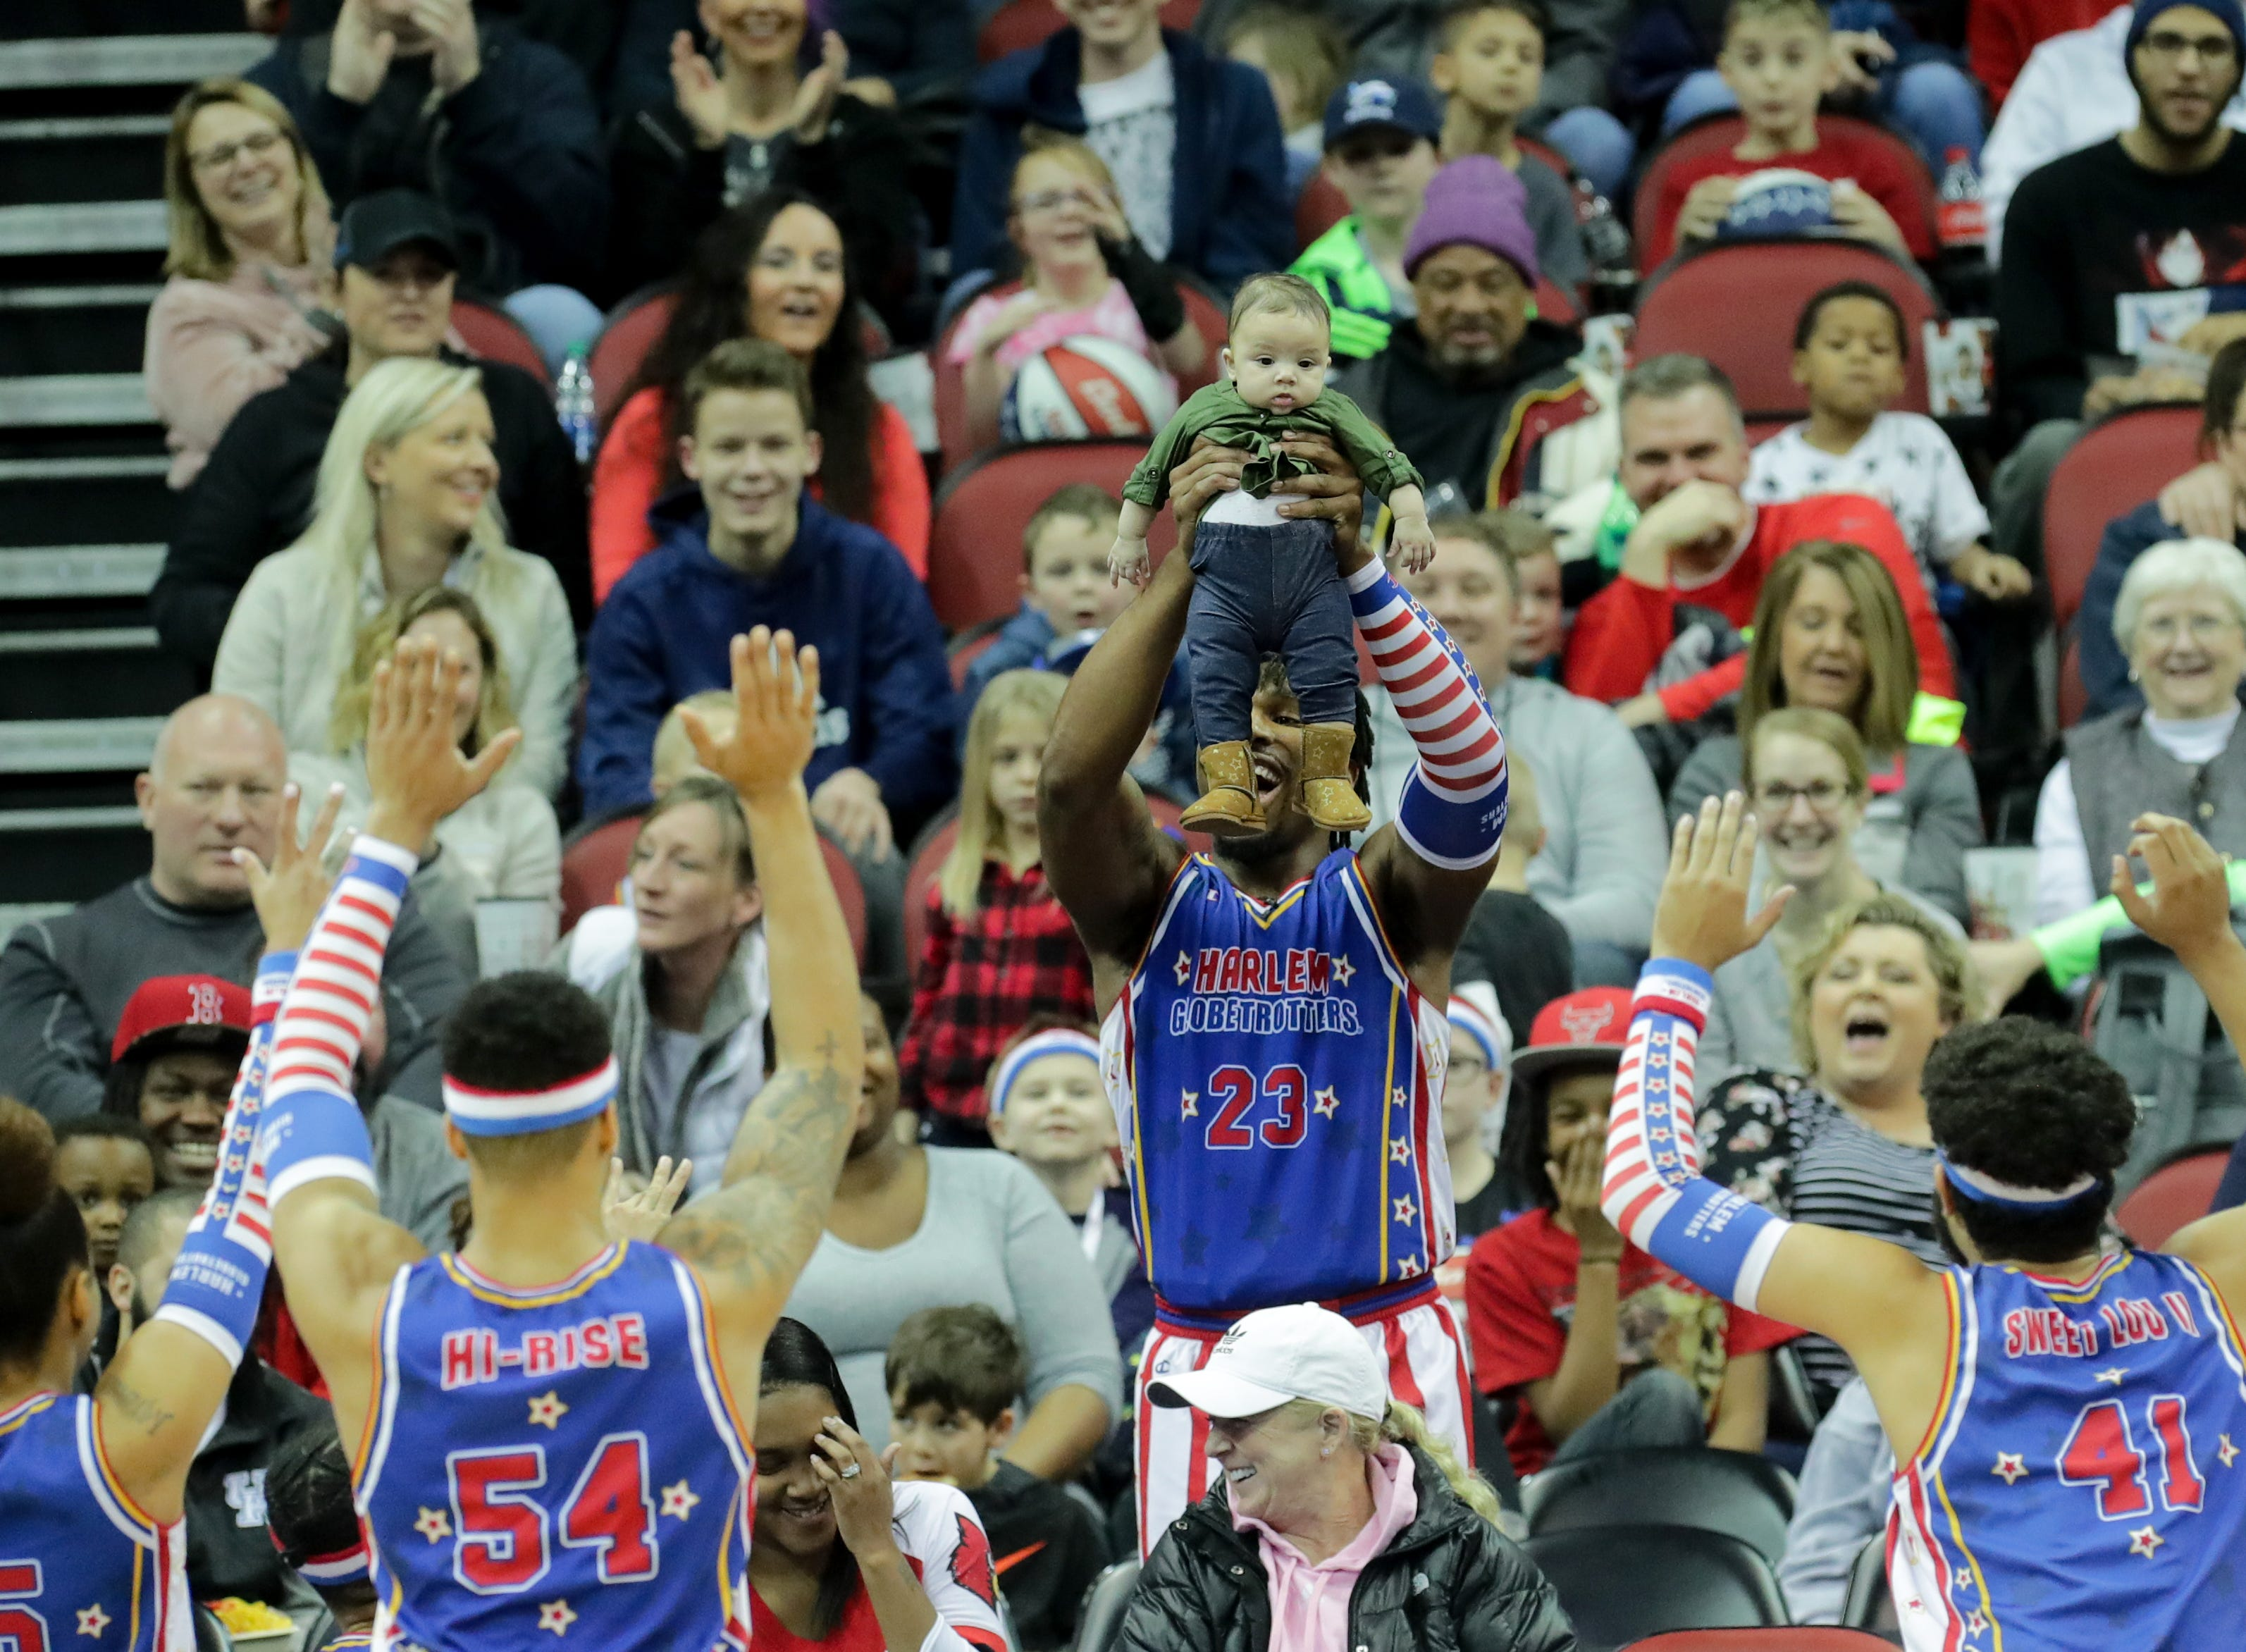 Harlem Globetrotters' Thunder remakes a scene from The Lion King by holding up a baby for the audience.Jan. 19, 2019